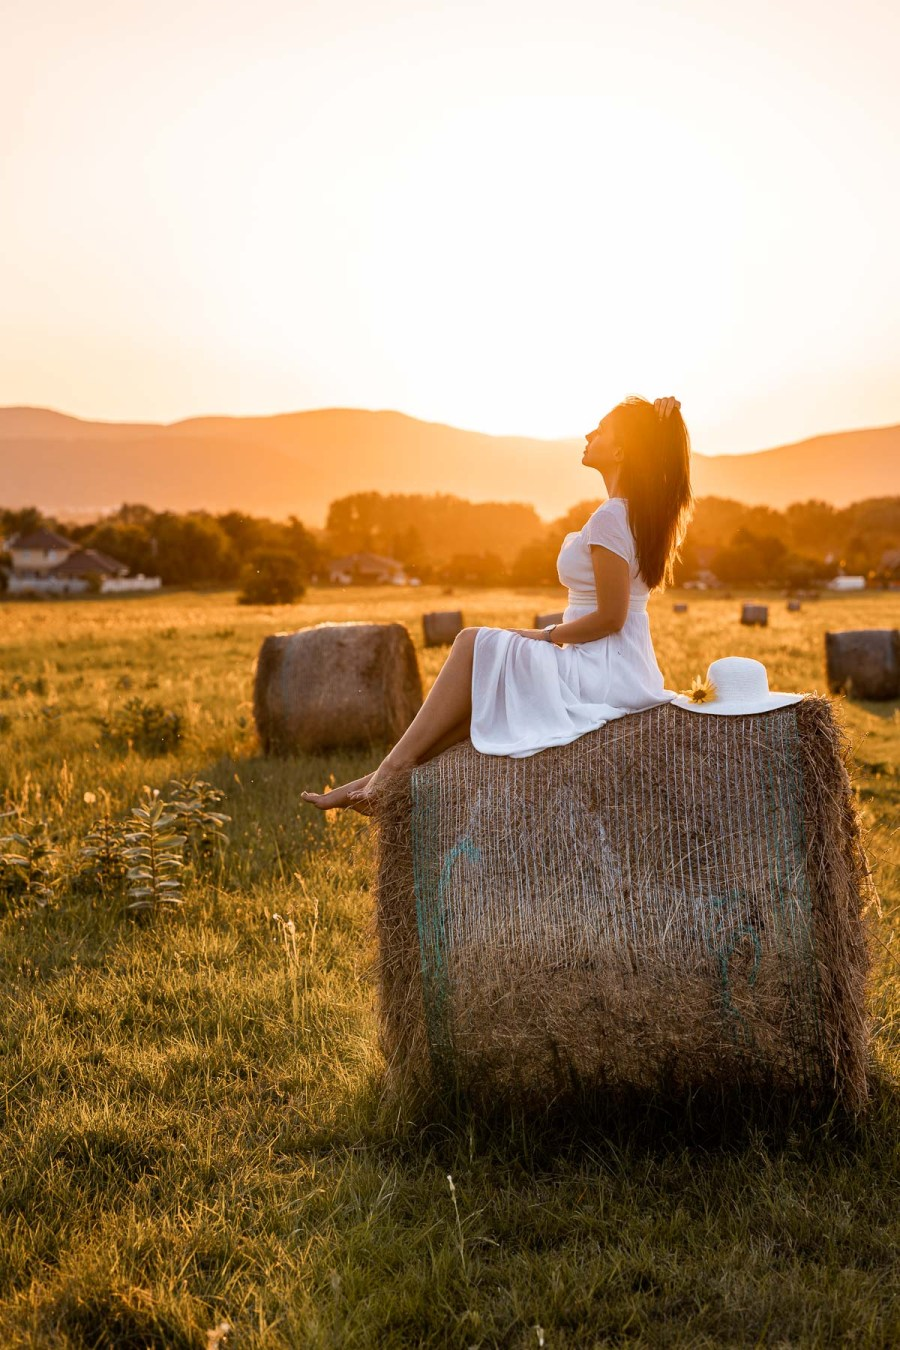 Girl in a white dress sitting on a haystack at sunset